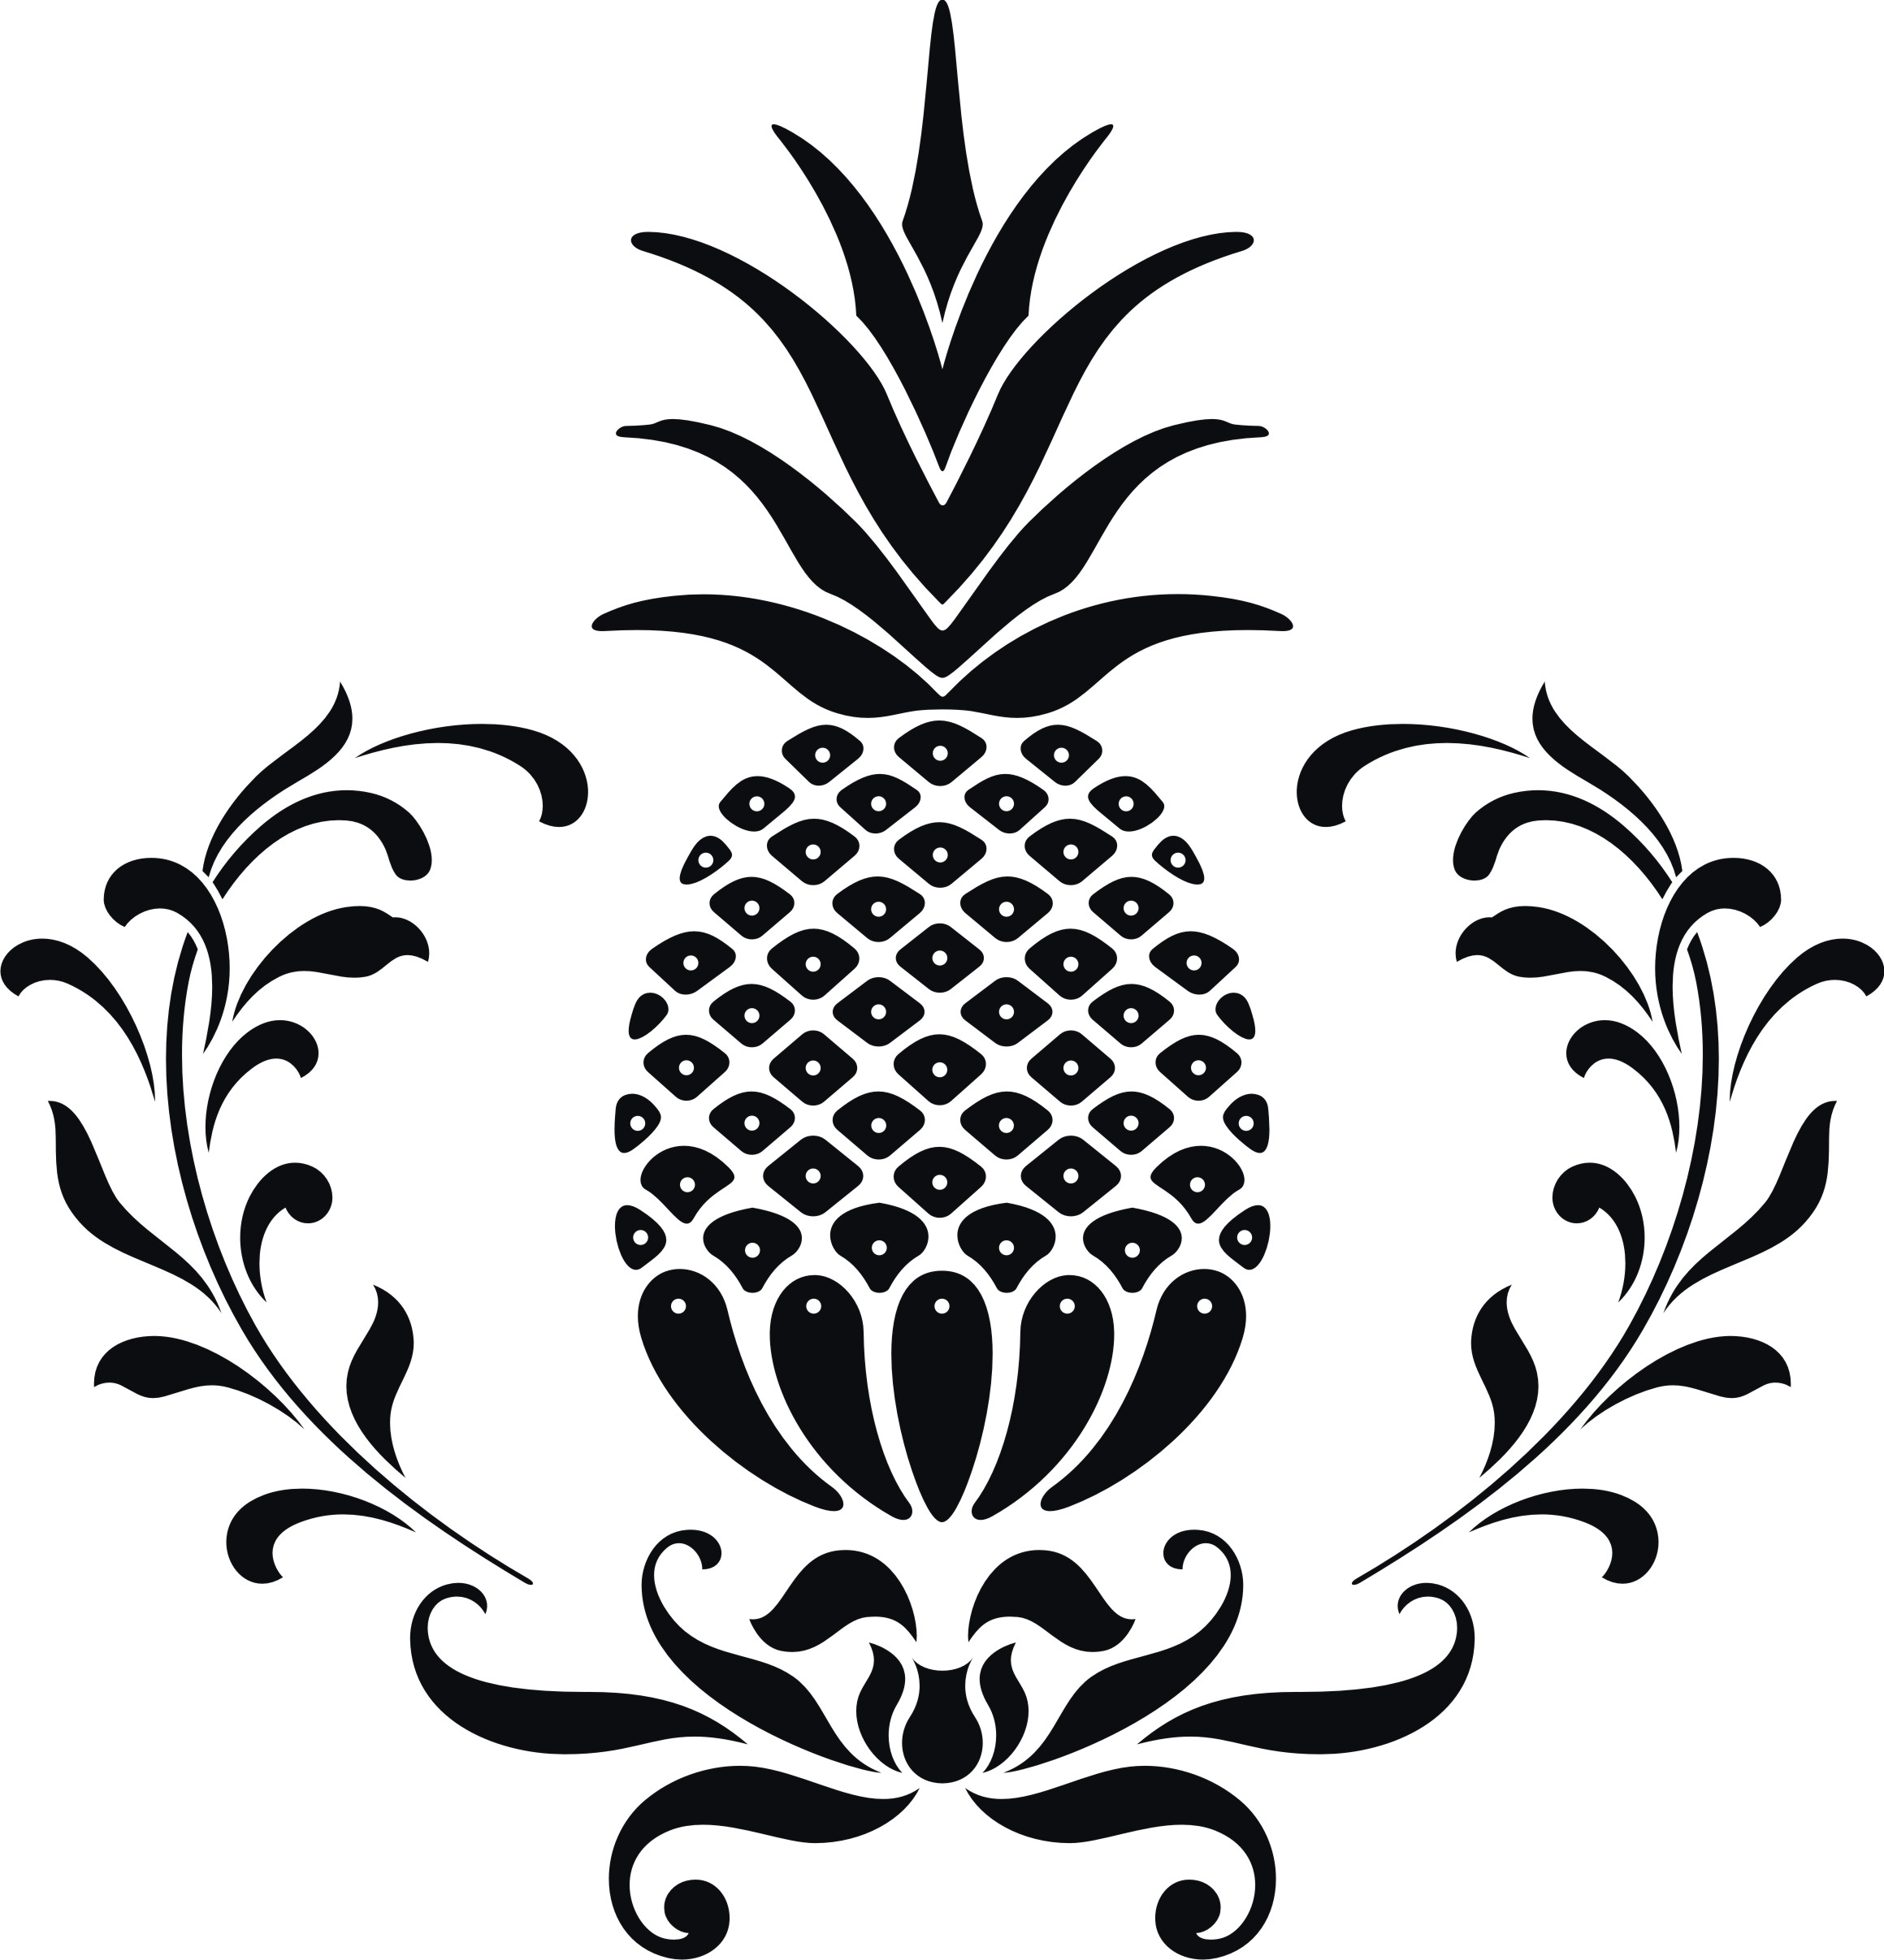 pine apple latin dating site Ocean spray® – ocean spray is the world's leading producer of good for you cranberry juices, juice drinks and snacks like craisins® dried cranberries.